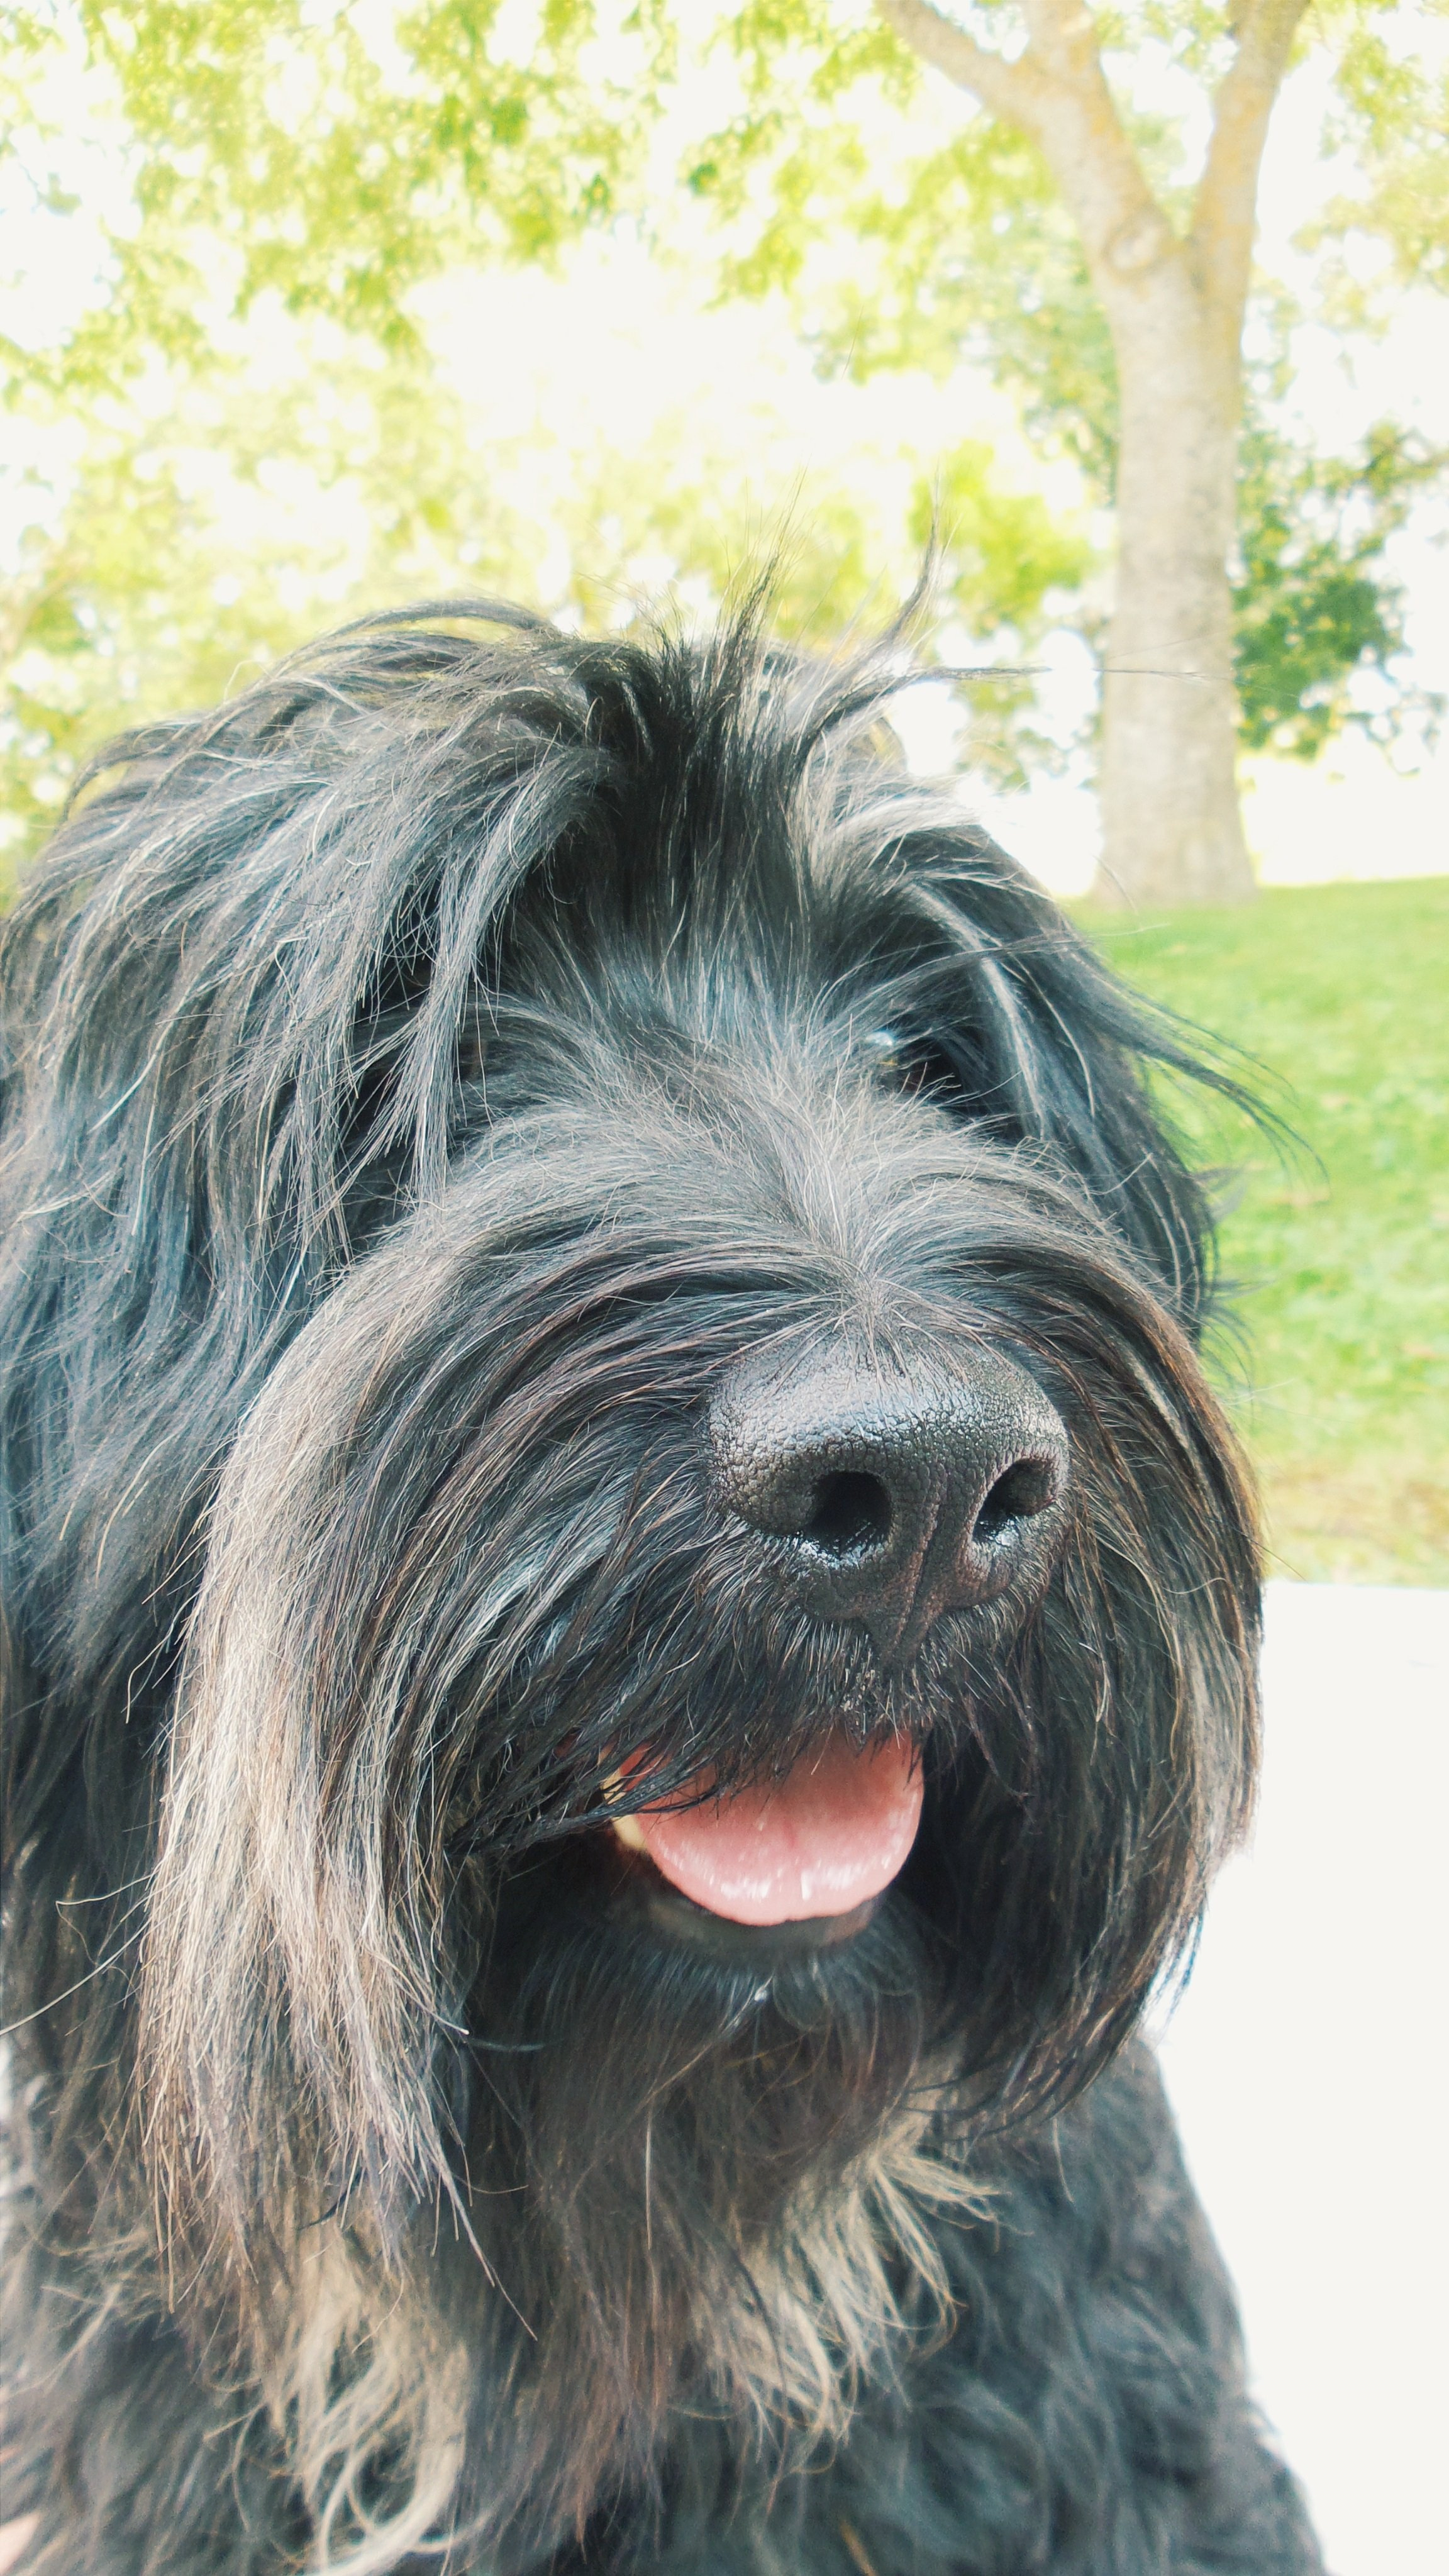 Portuguese Sheepdog Breed Pictures